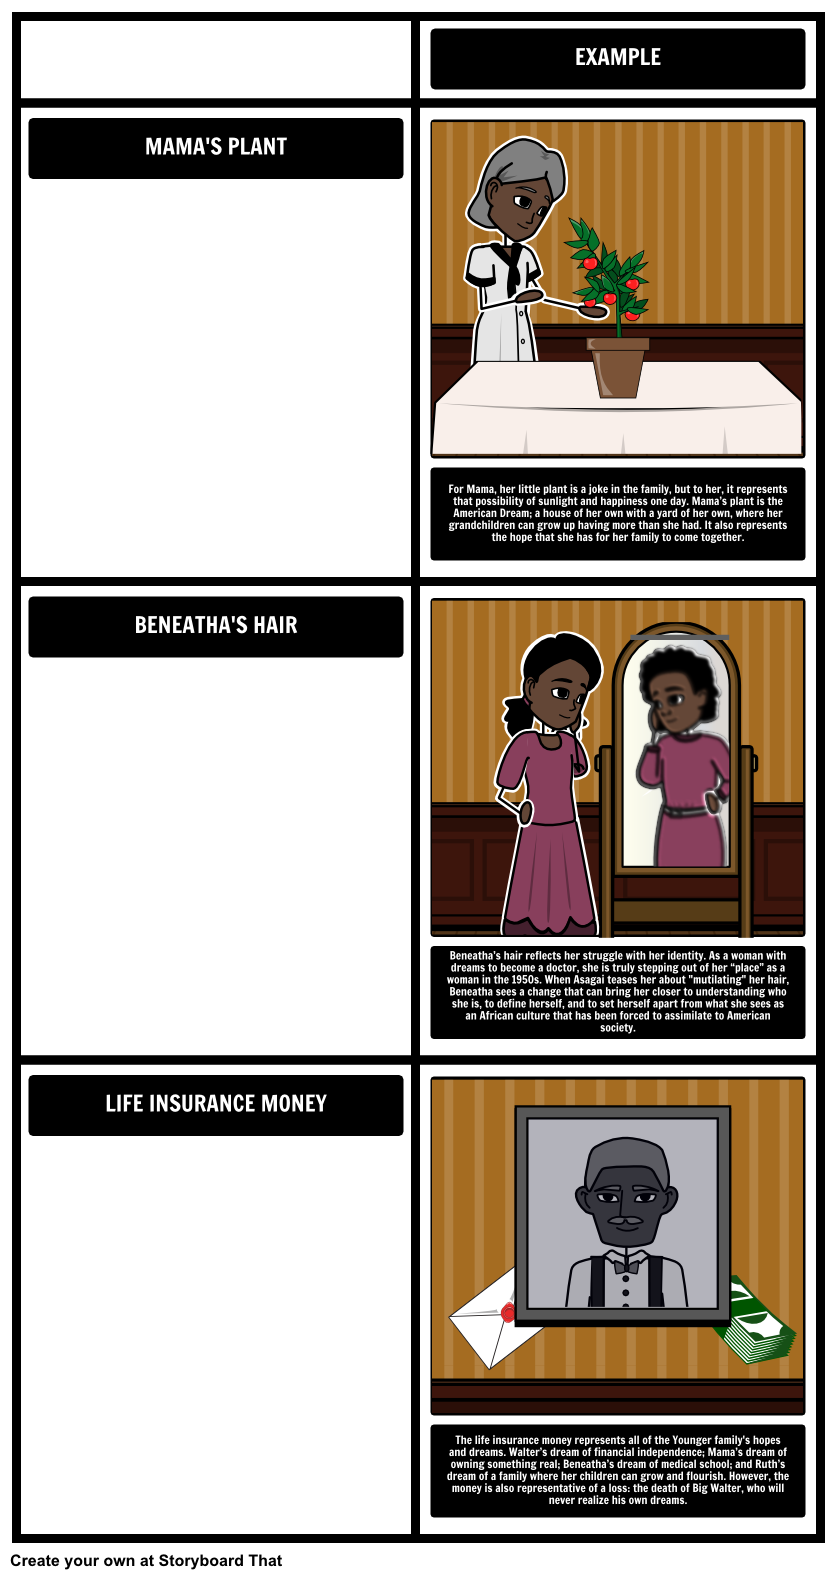 a raisin in the sun plot diagram 2008 gmc envoy radio wiring by lorraine hansberry - themes, symbols, and motifs: using storyboard that's ...